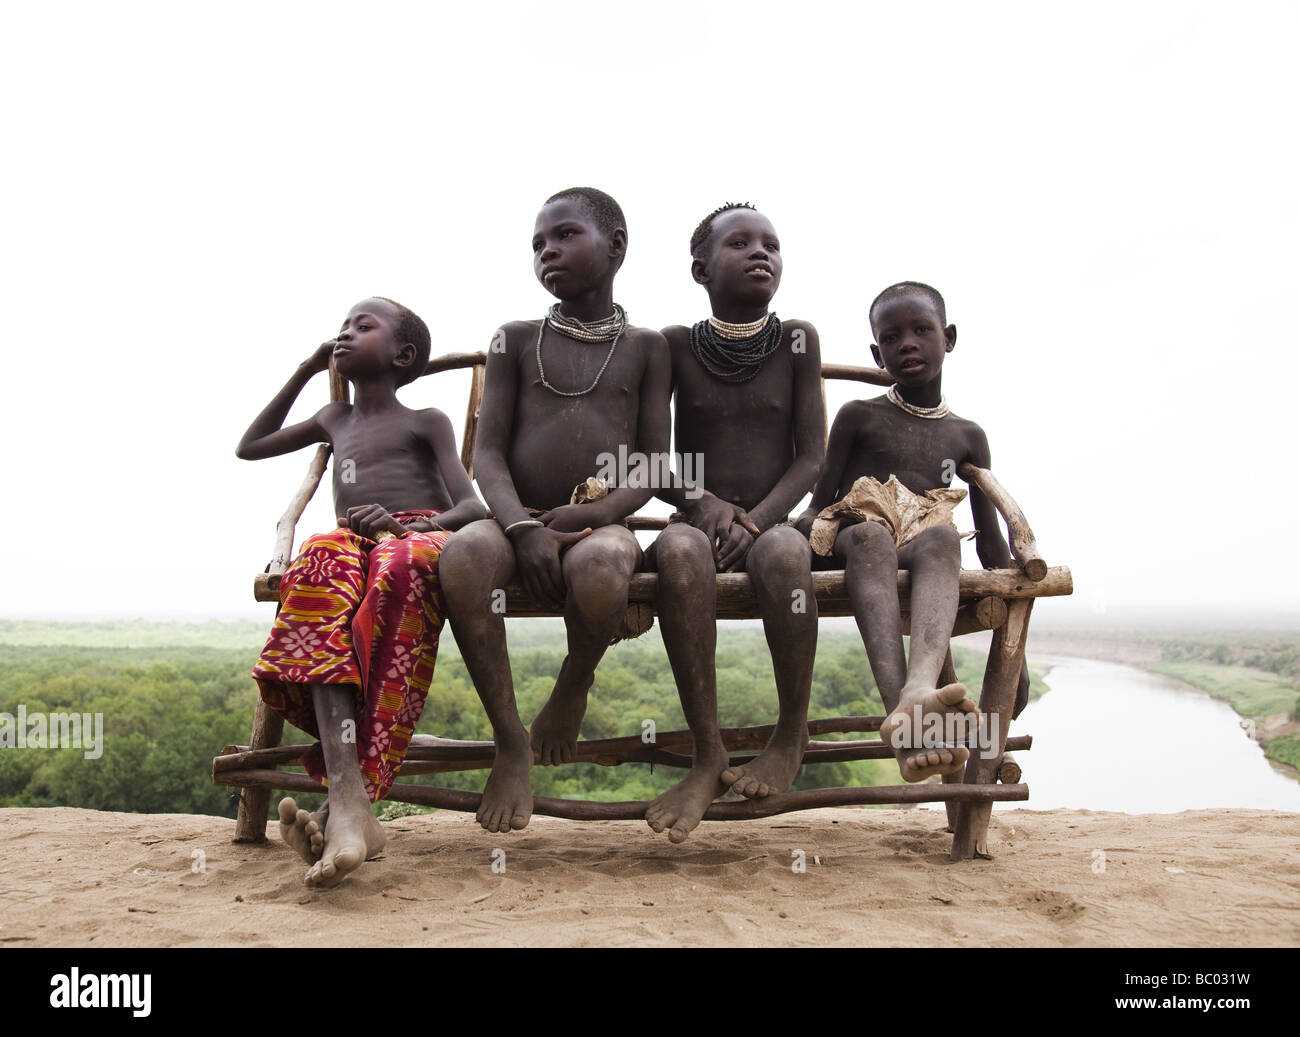 Four young boys sit on a bench overlooking the Omo River in the remote Omo Valley, Ethiopia. - Stock Image